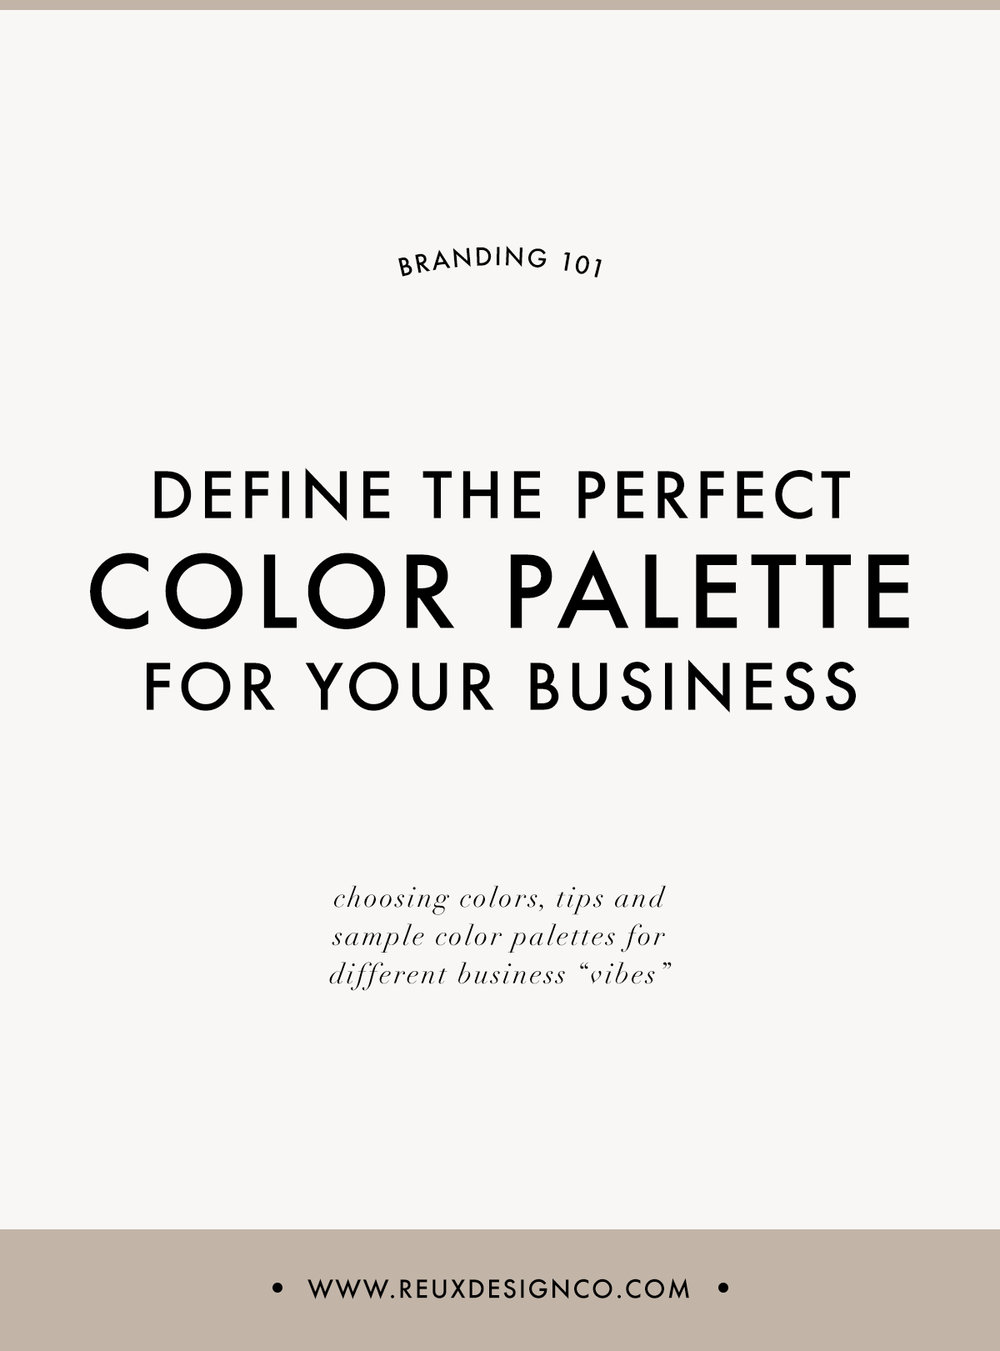 defining the perfect color palette for your brand | Reux Design Co.